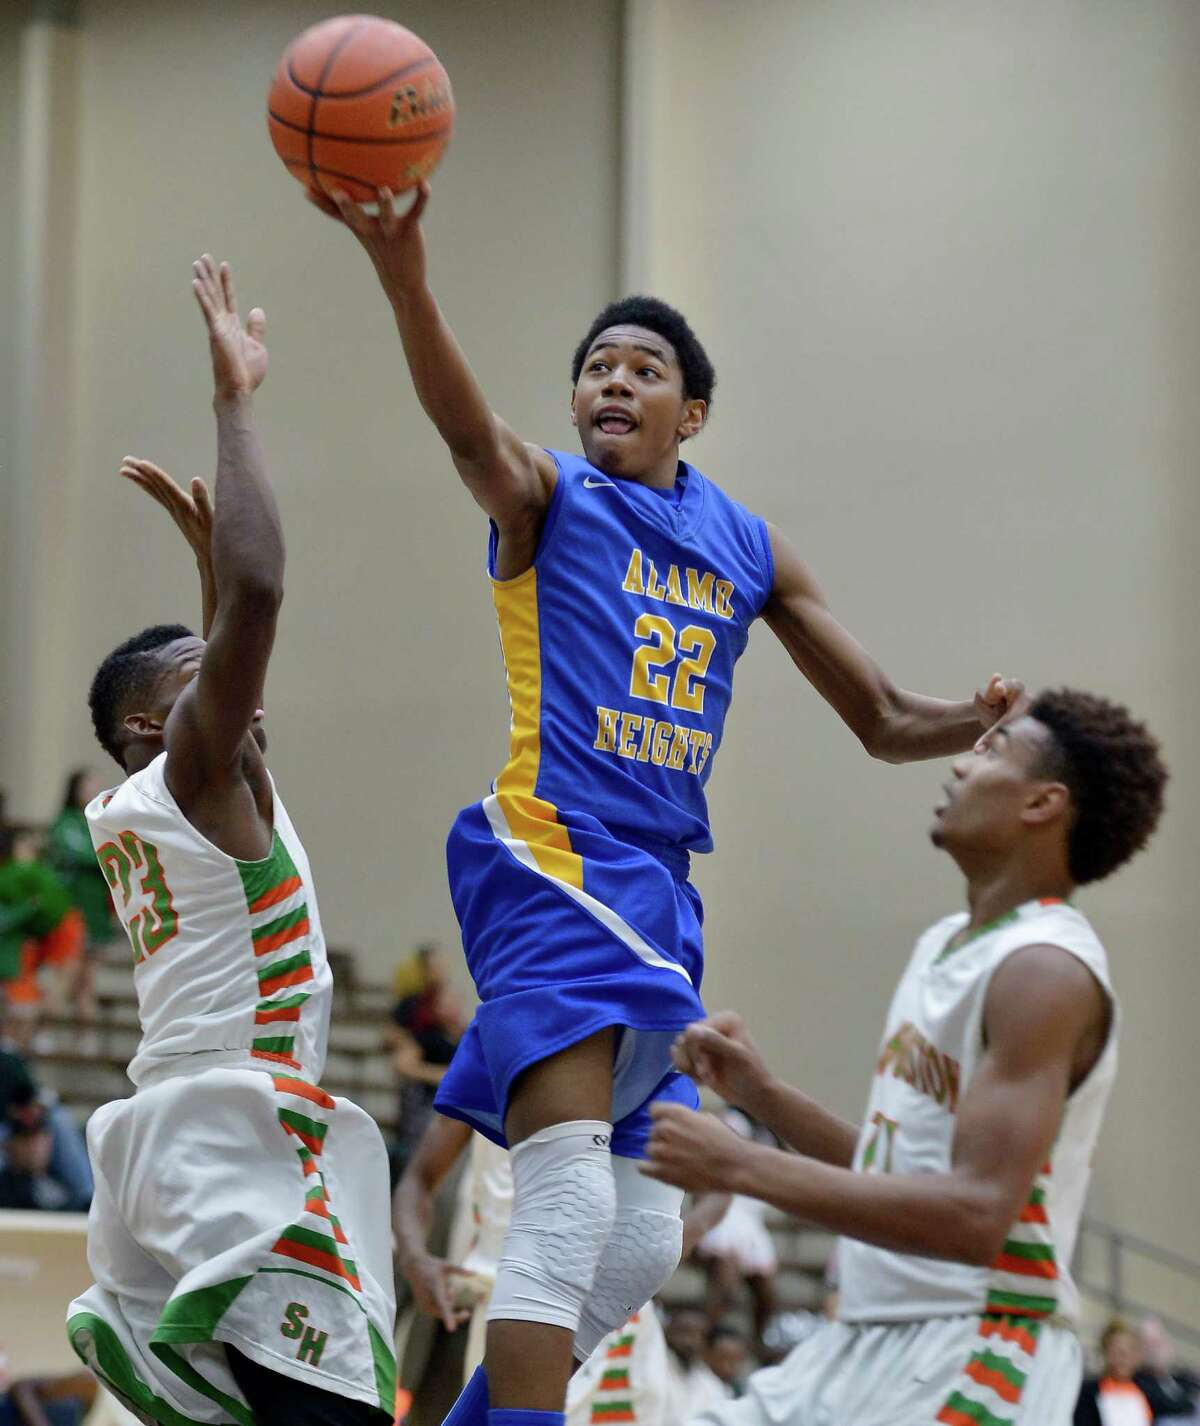 Alamo Heights' Jhonathan Dunn shoots against Sam Houston's Darrel Bledsoe (left) and Jawon Anderson on Feb. 24, 2015, at Alamo Convocation Center in San Antonio.